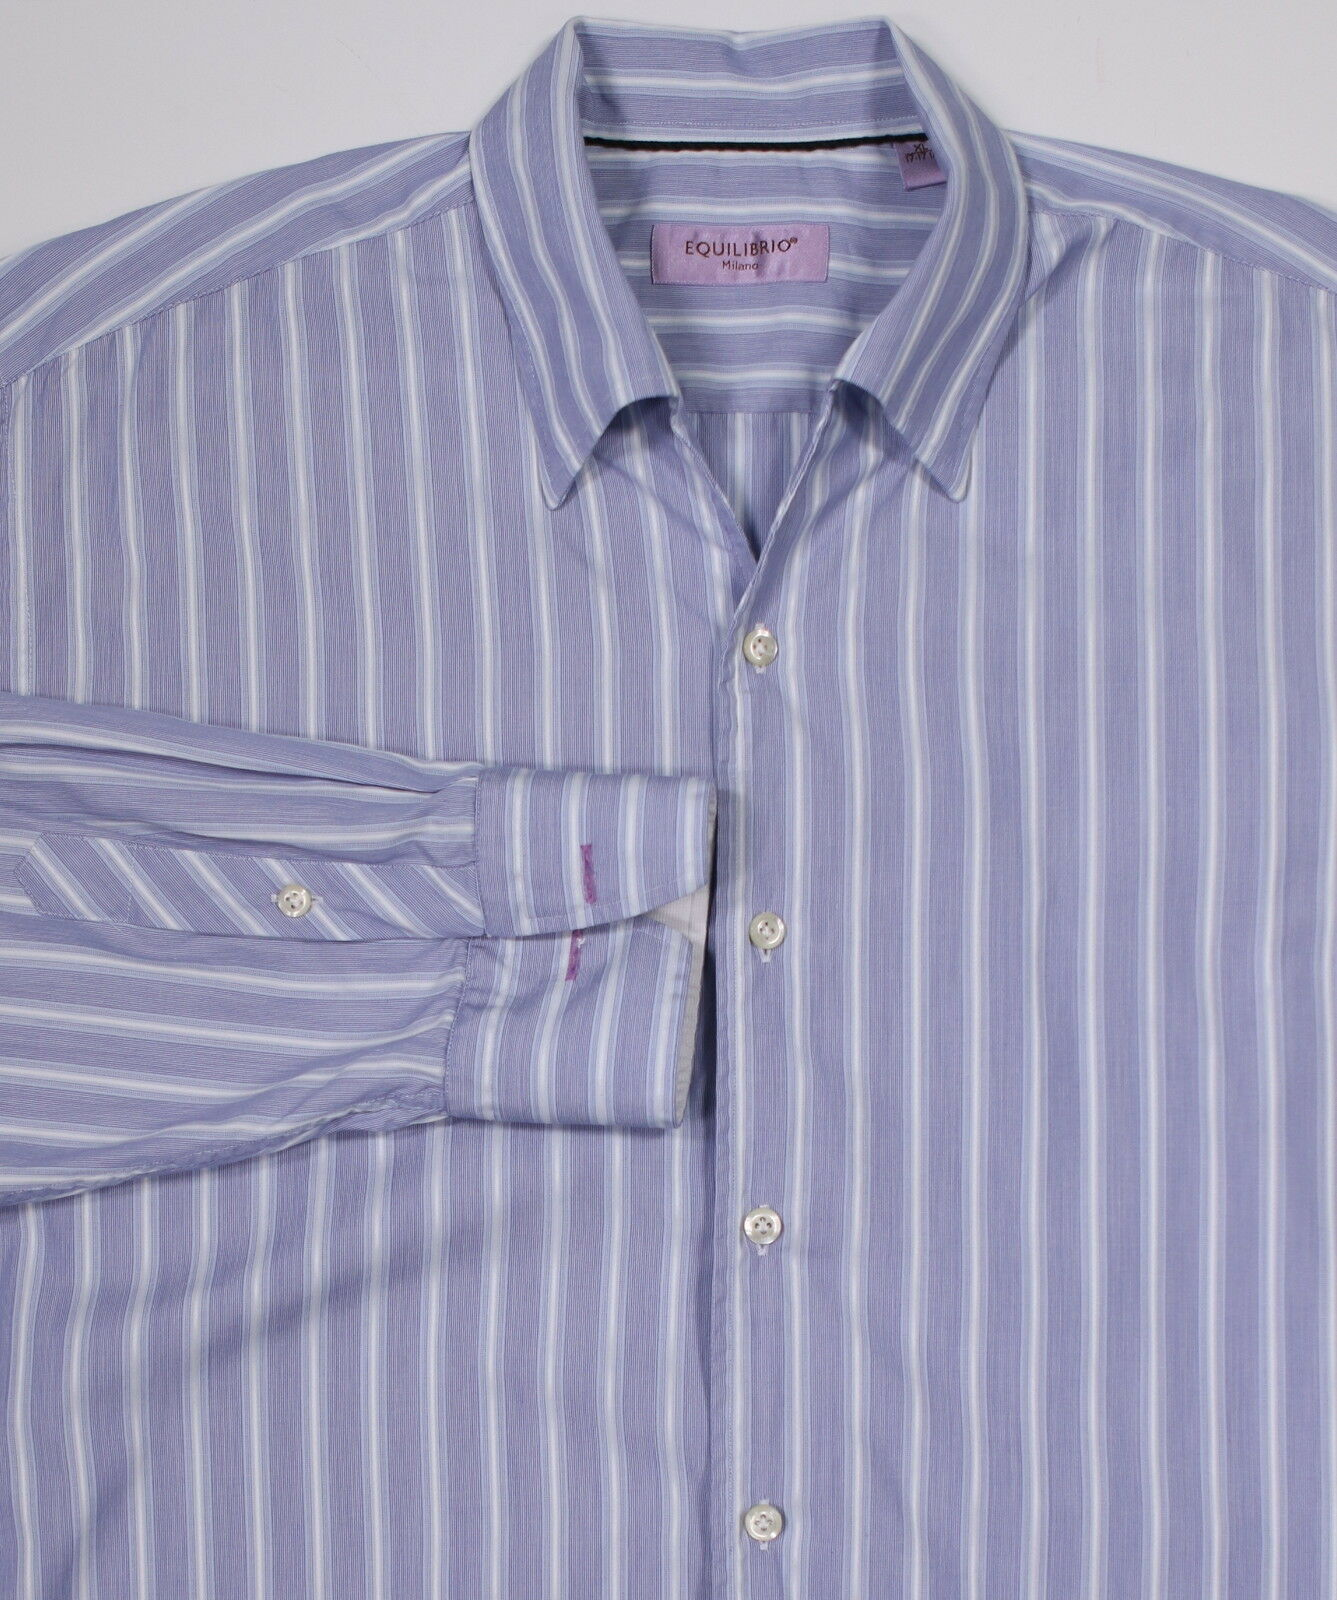 EQUILIBRIO bluee Striped Open-Collar Dress-Casual Shirt XL-17-17.5